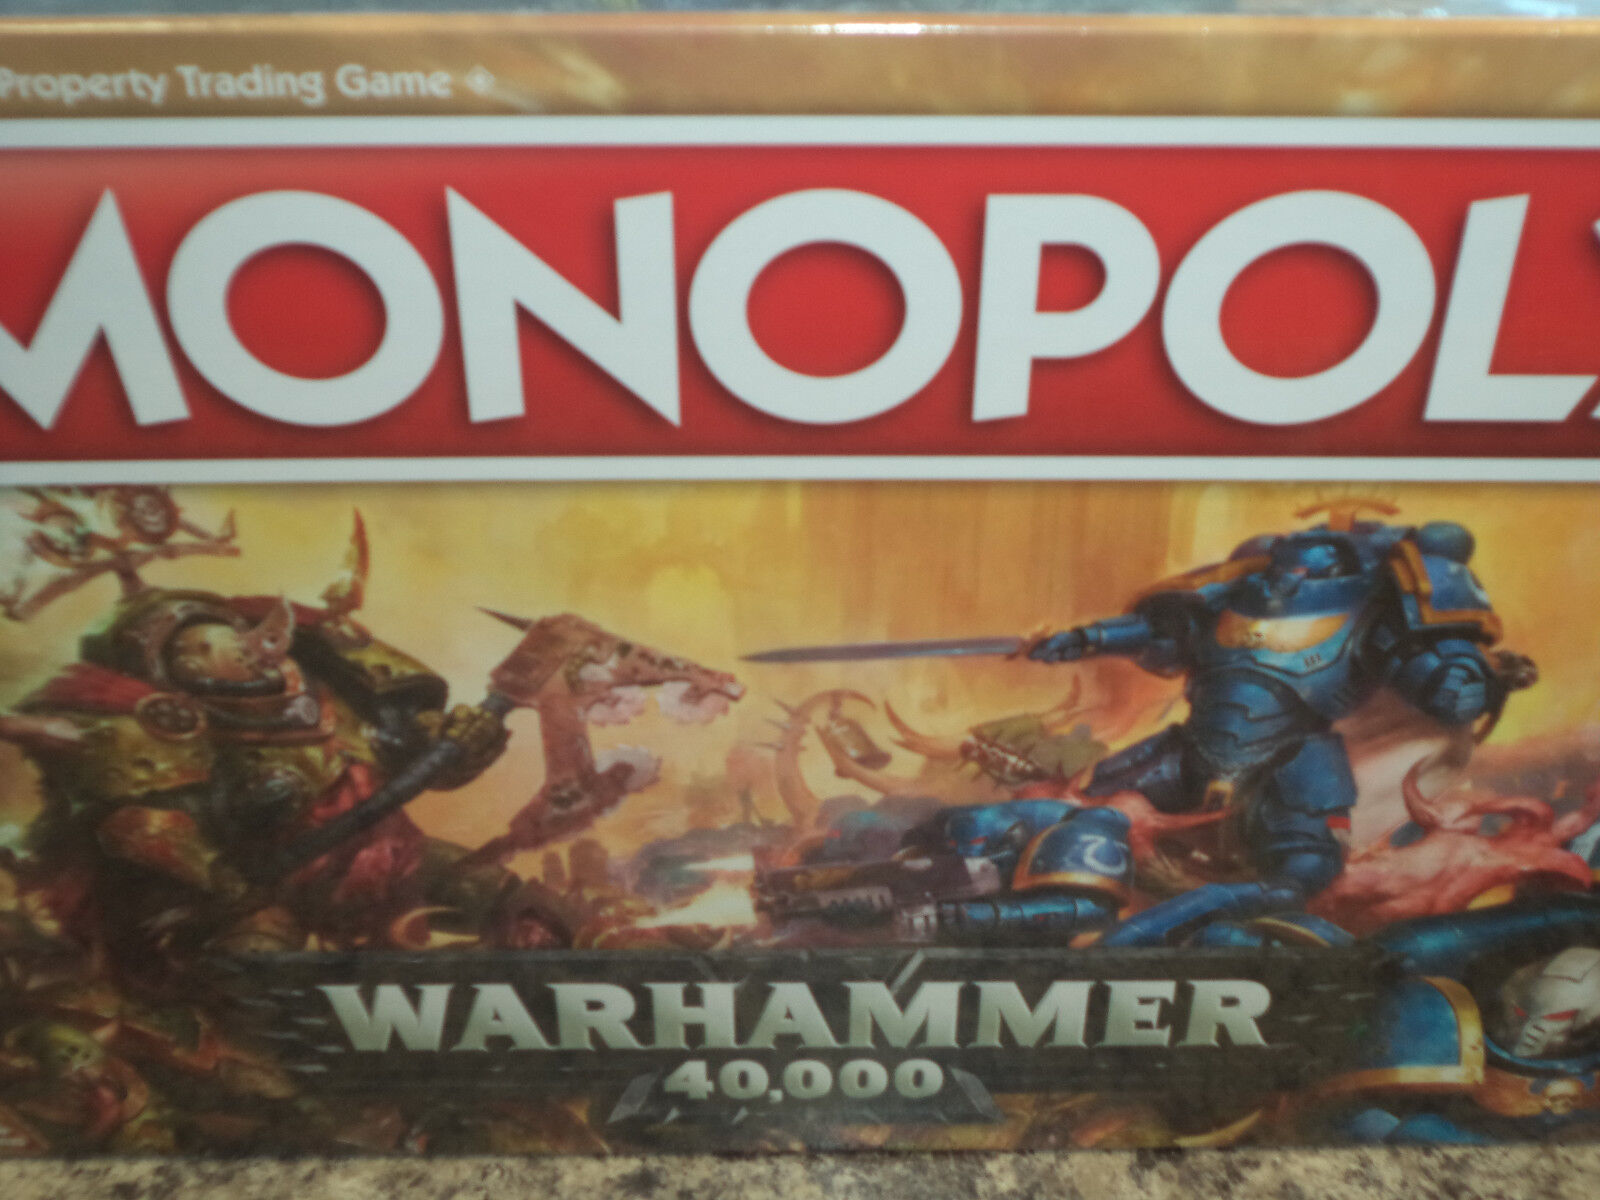 Warhammer 40k 40,000 Edition Monopoly - USAopoly Games Board Game Nuovo